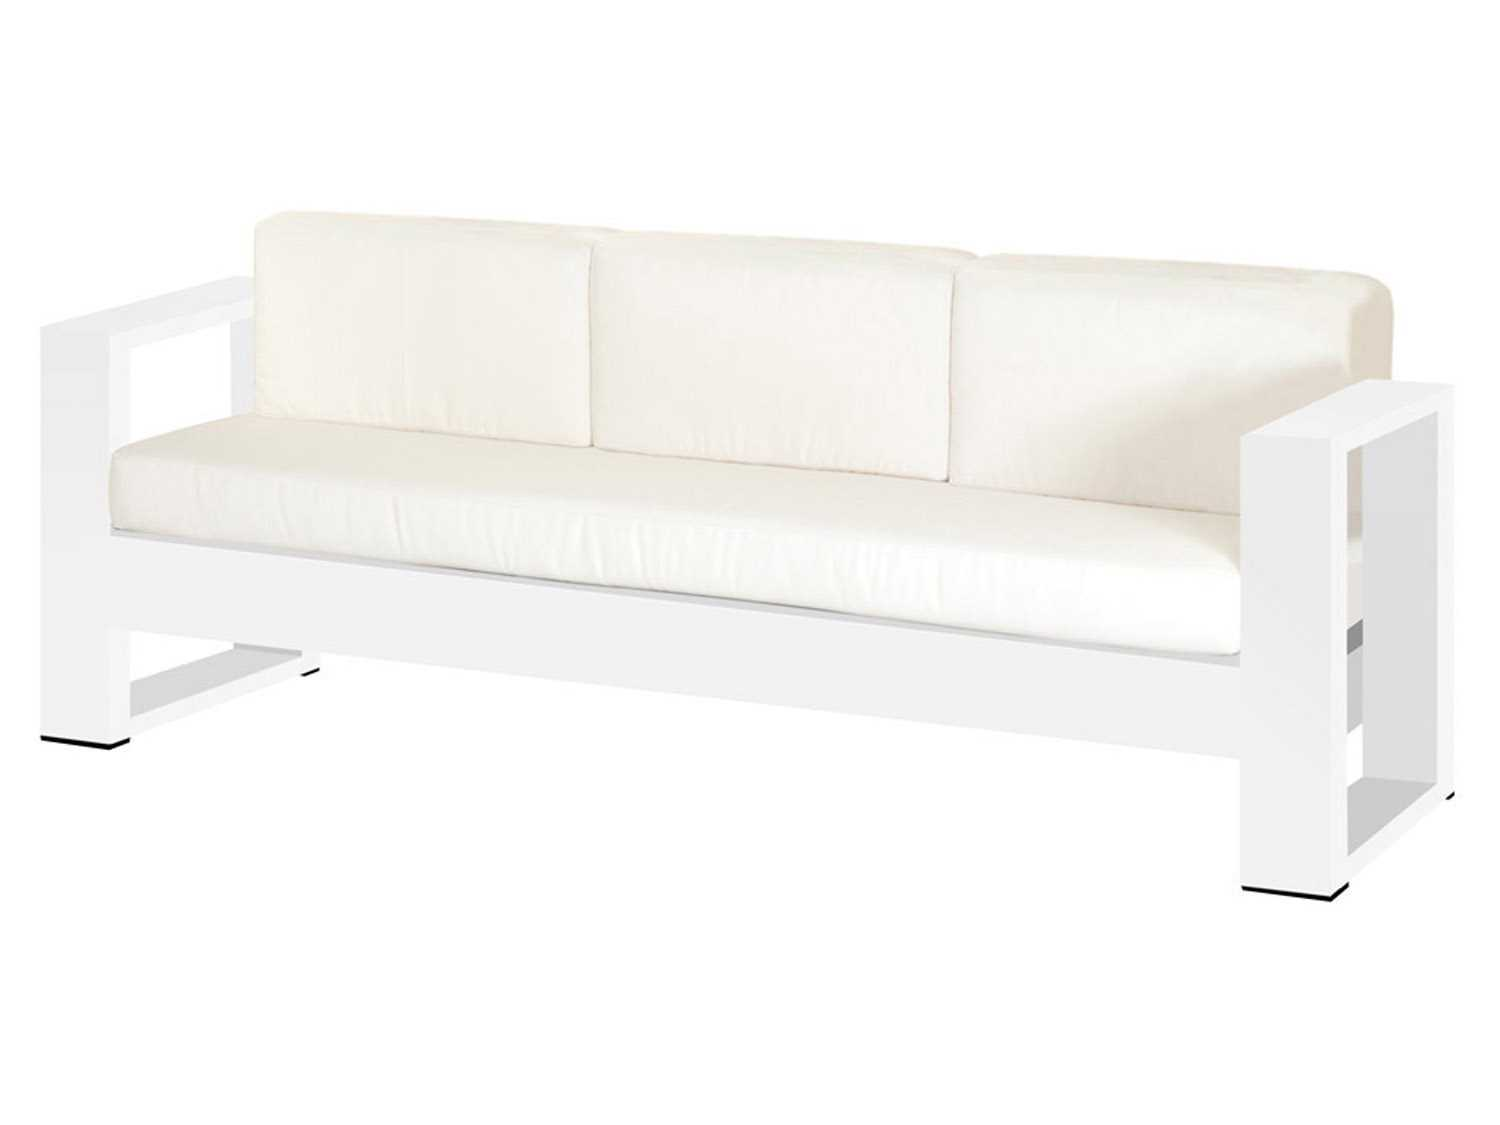 Caluco space sofa 701 23p for Bedroom furniture 70123